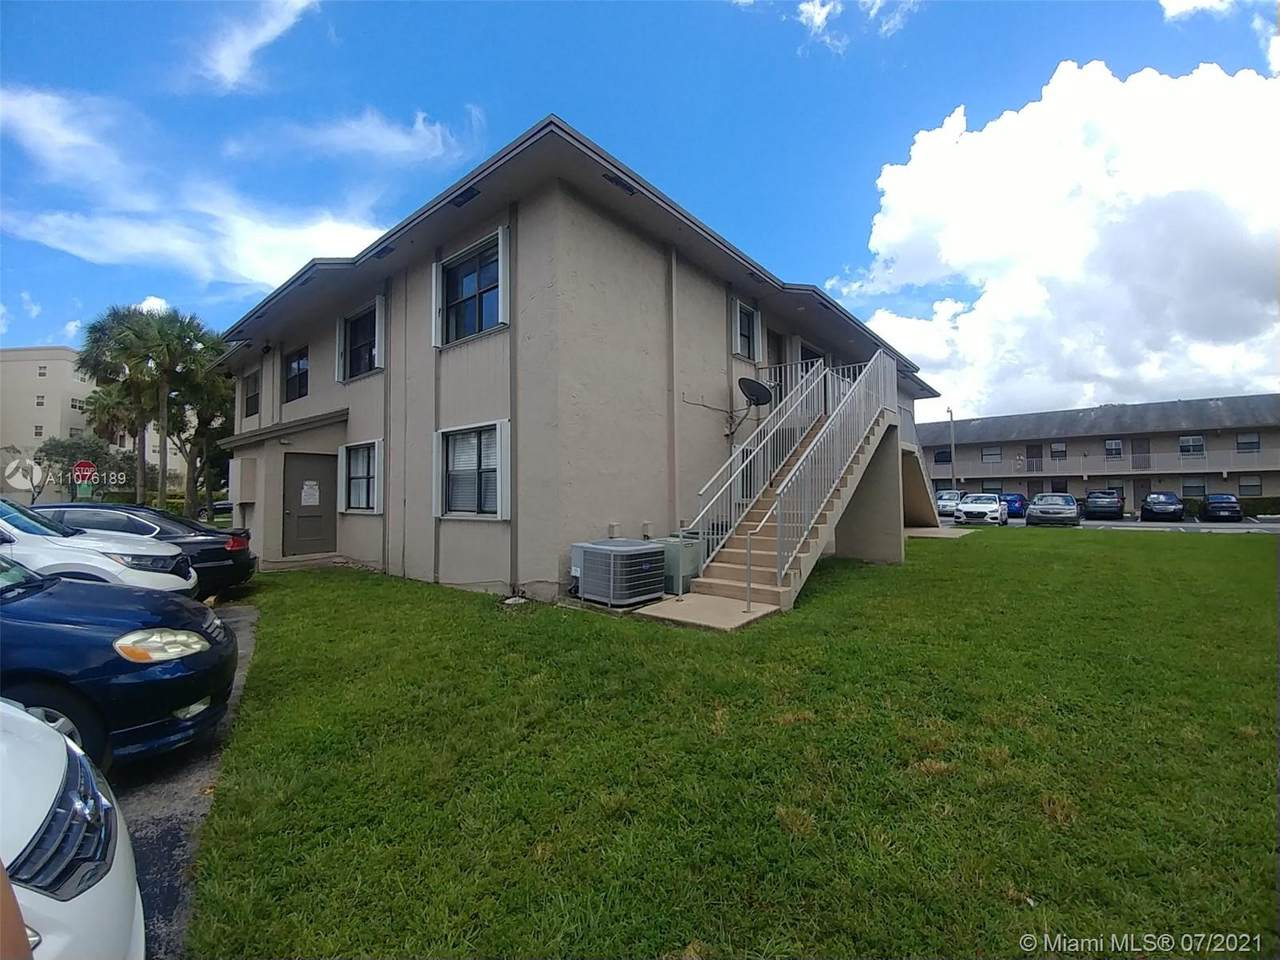 7662 152nd Ave - Photo 1